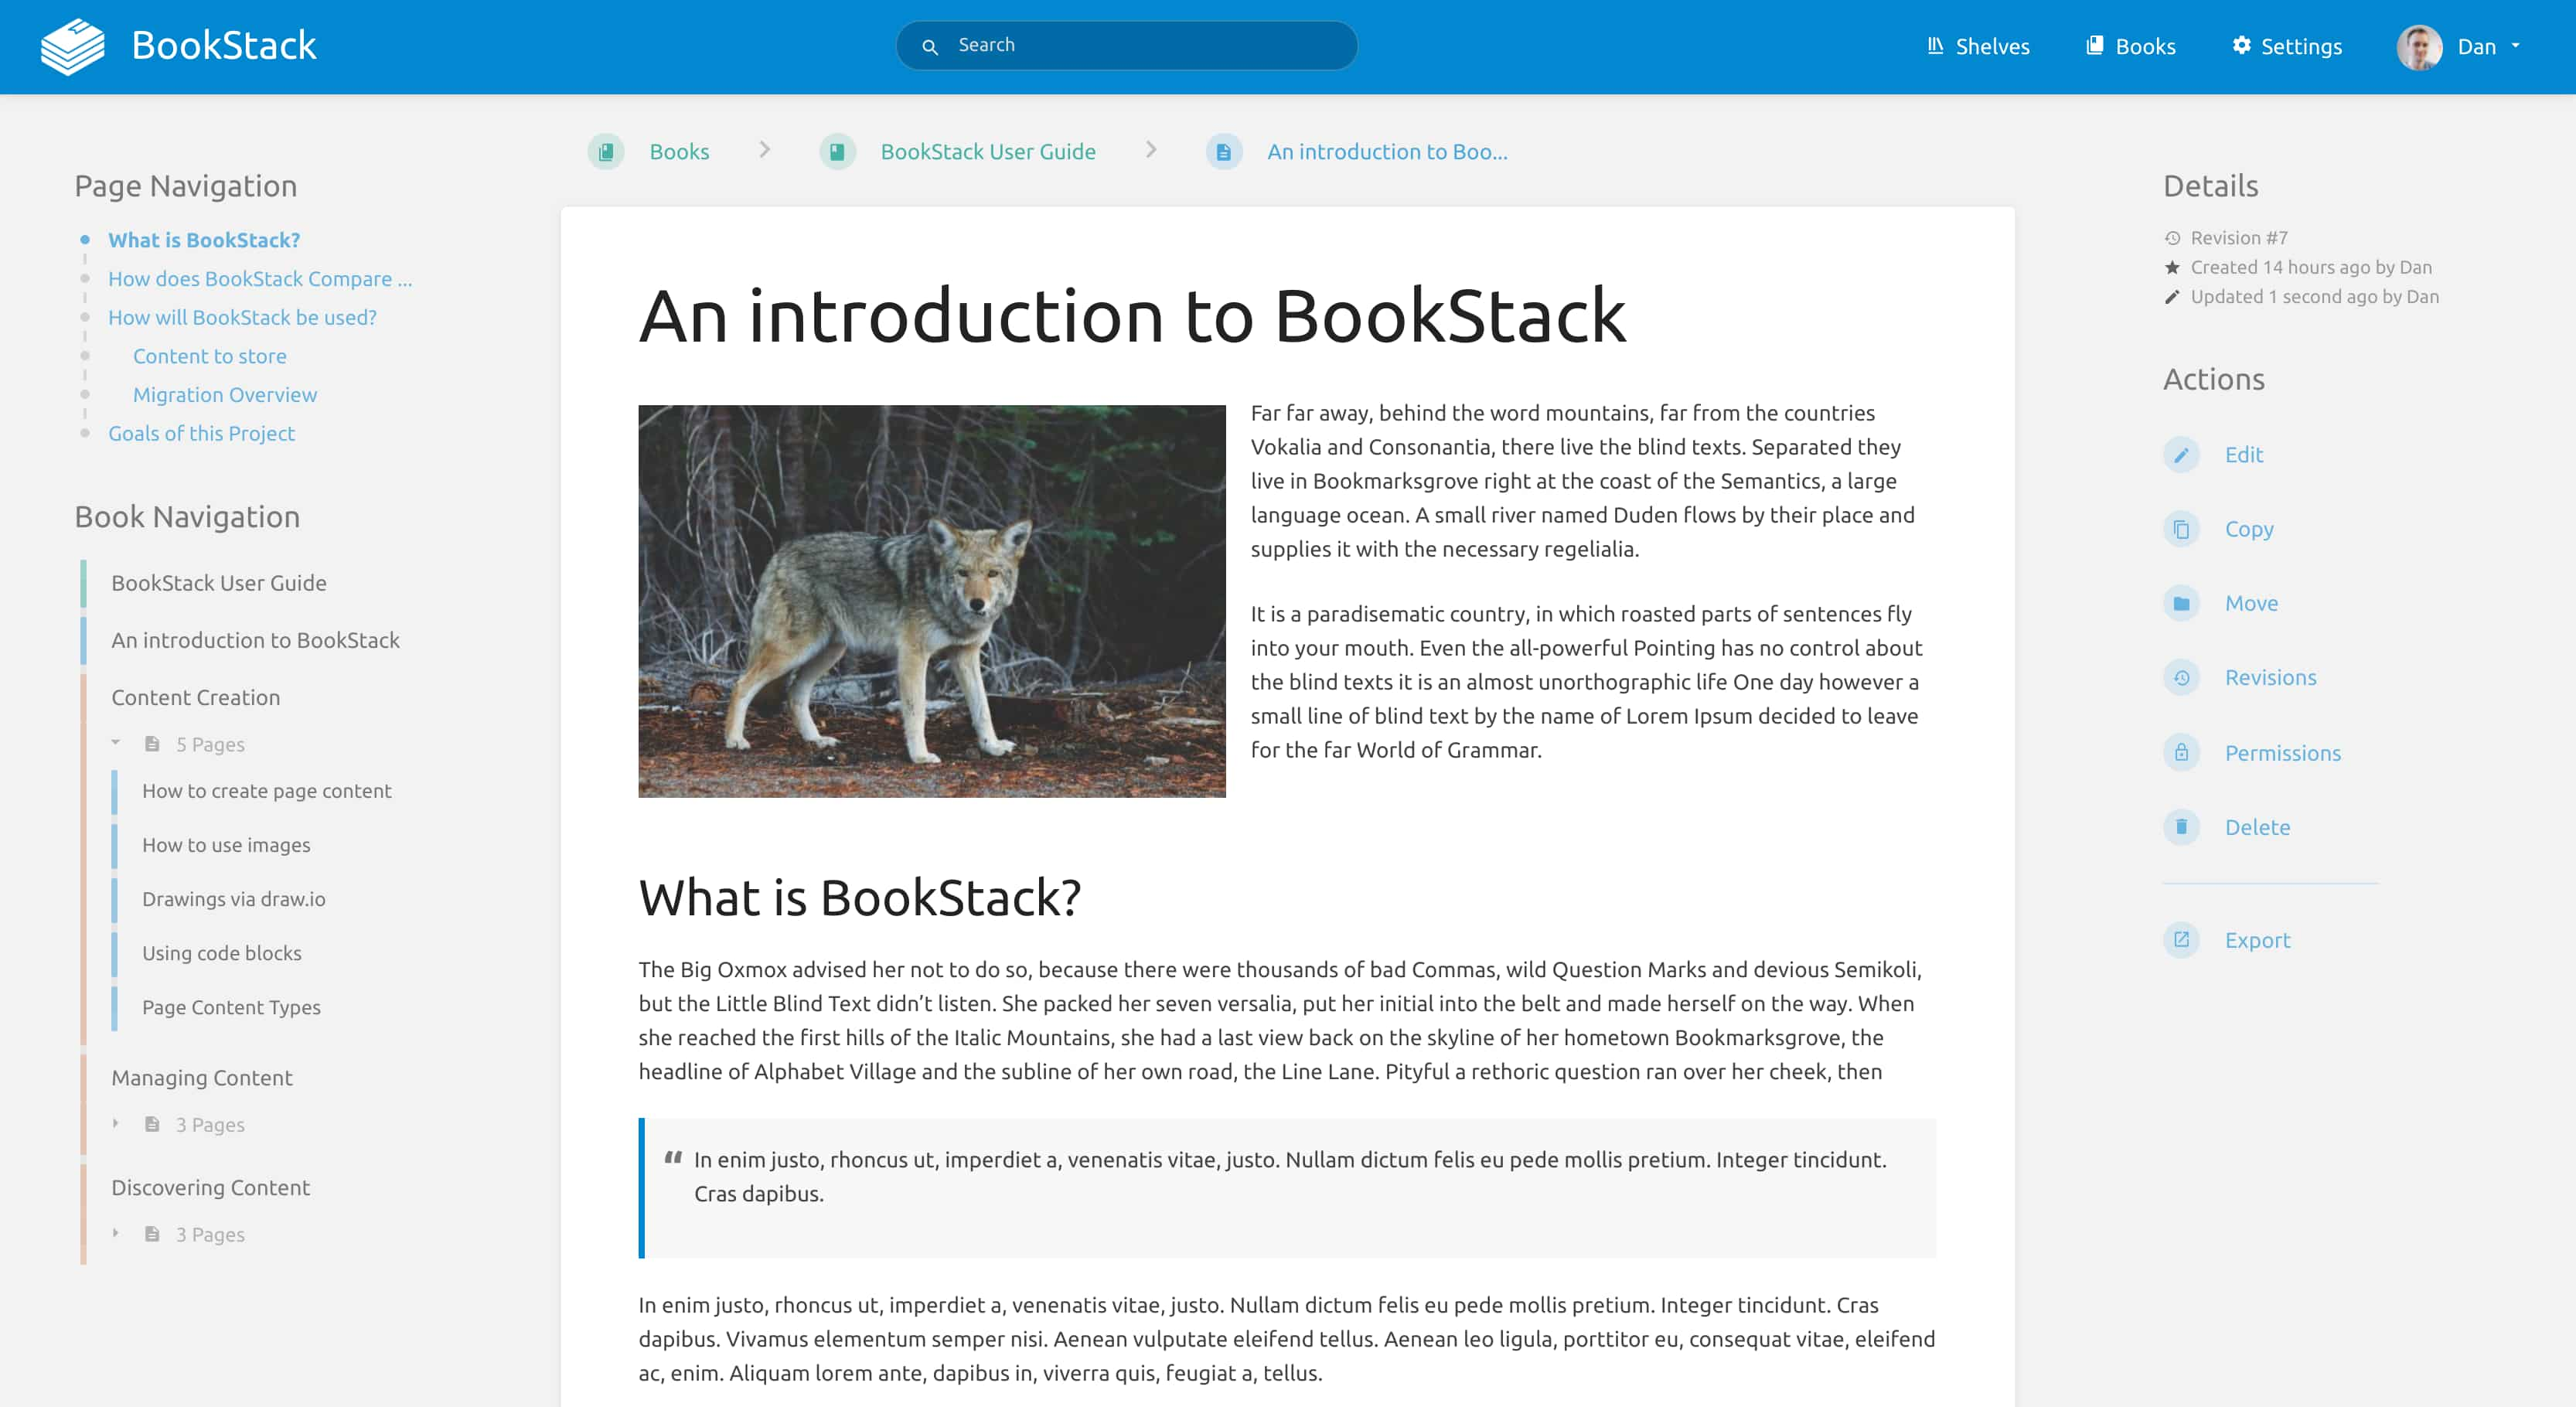 bookstack-hero-screenshot.jpg